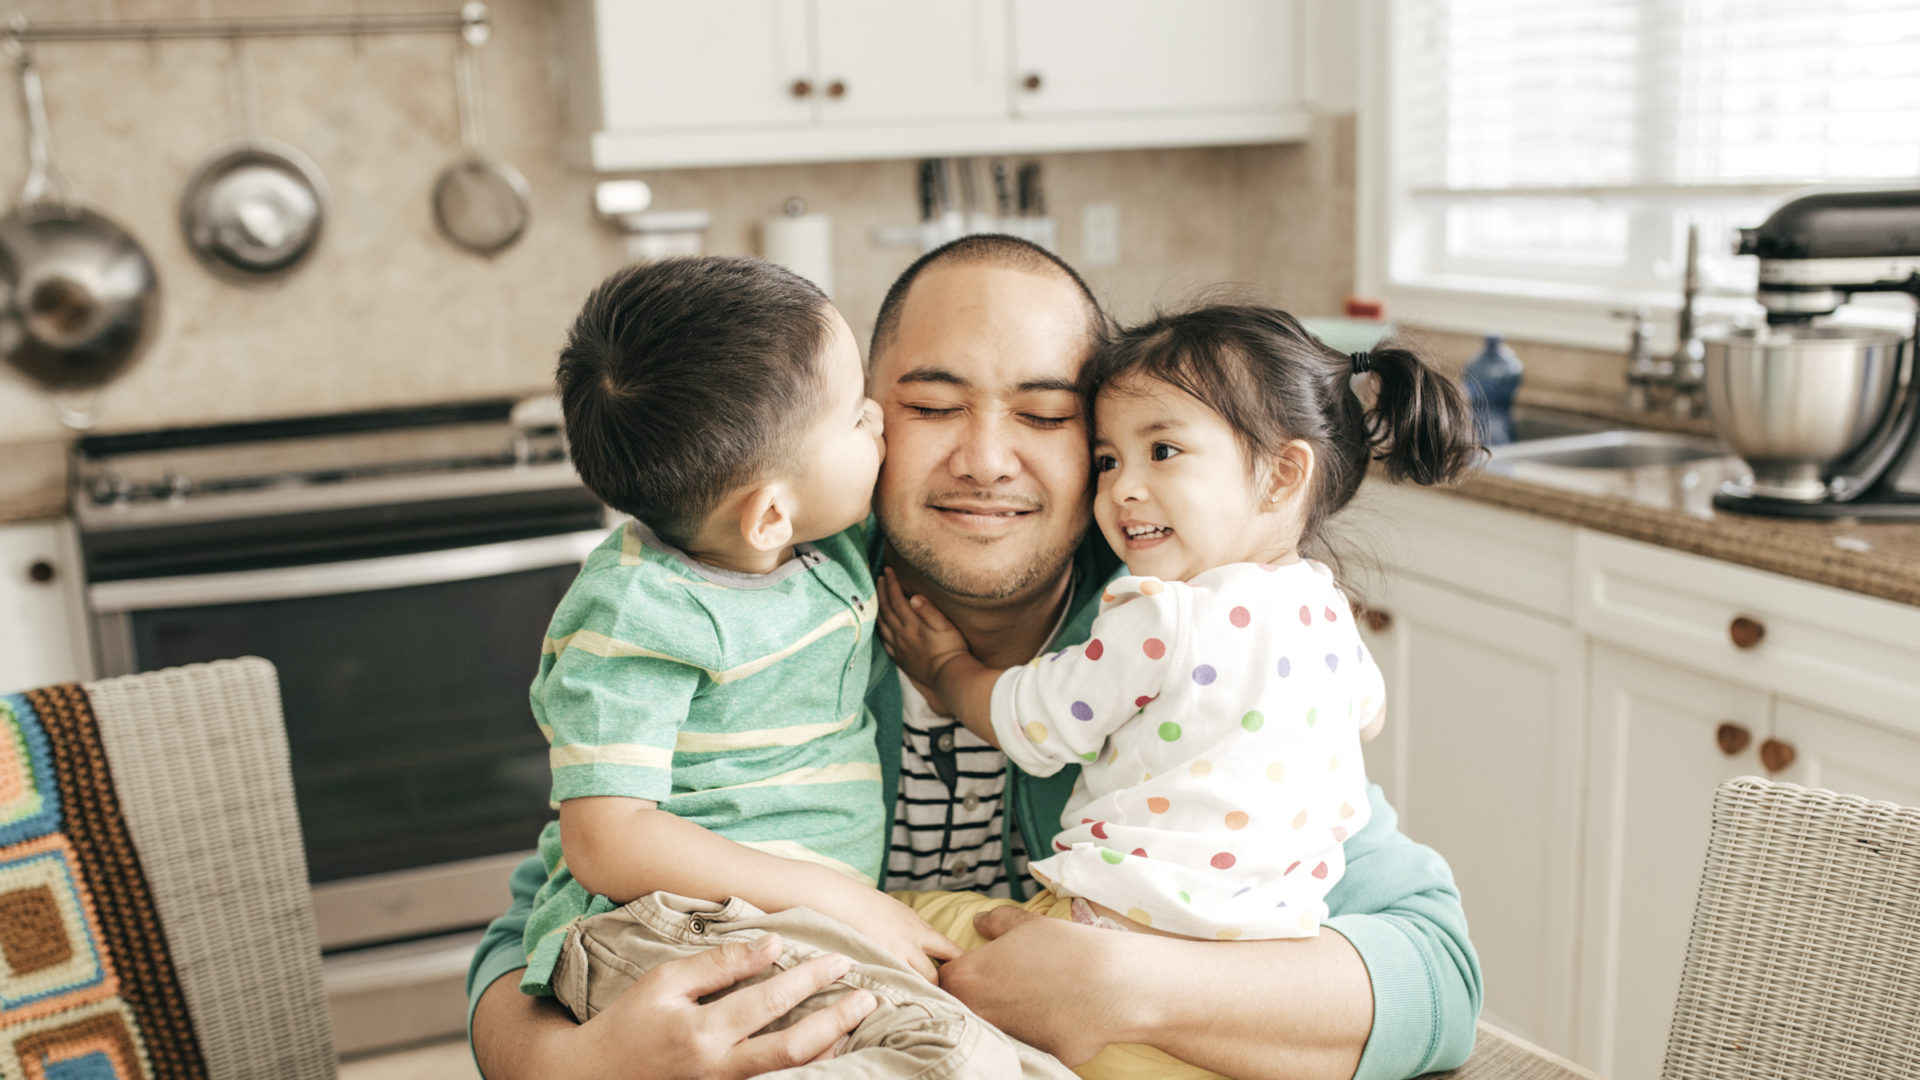 A father hugging two children in the kitchen